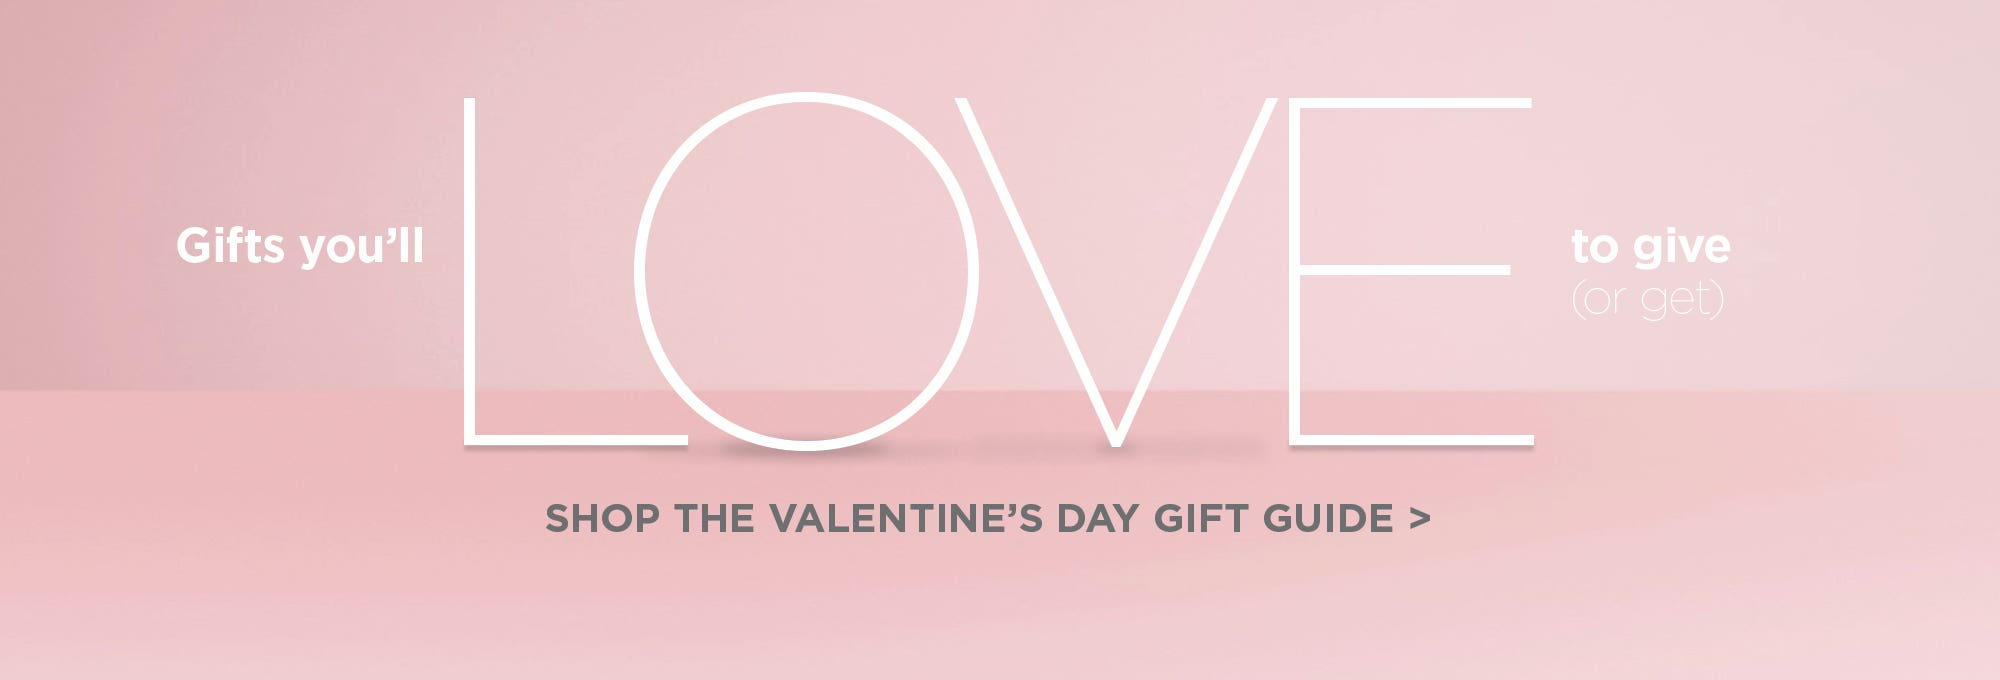 Shop the Valentine's Day Gift Guide